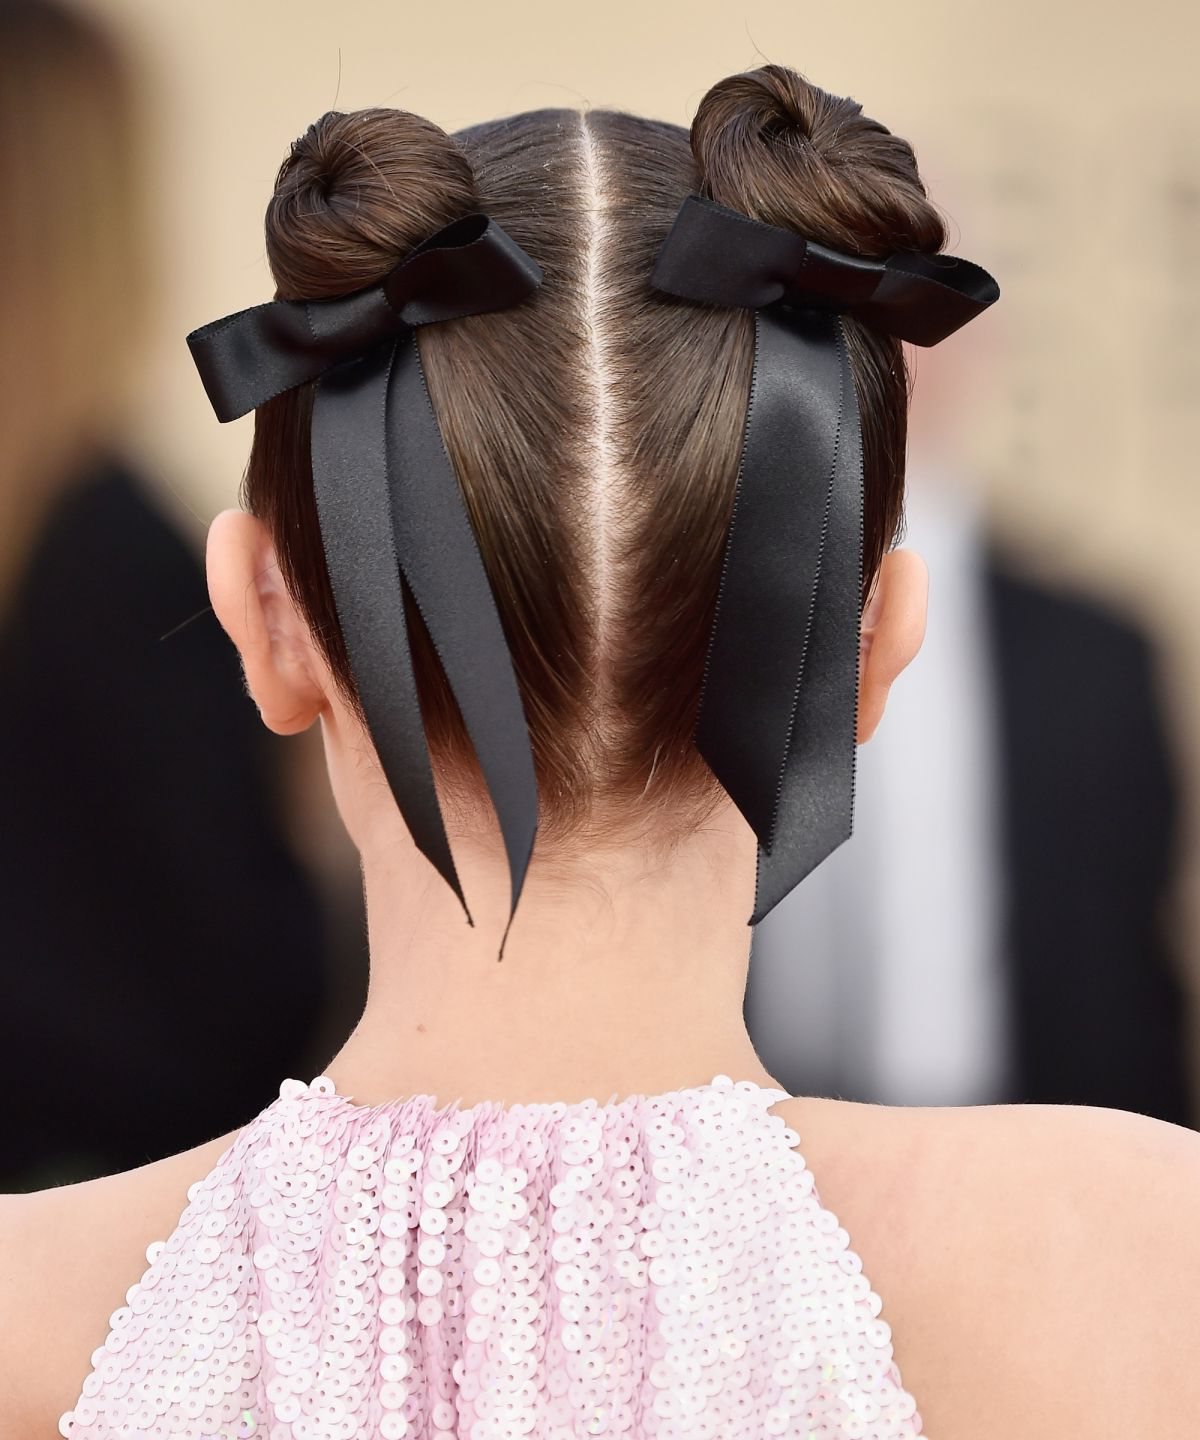 2018 Black Bow Ponytail Hairstyles Pertaining To Celebrities Love This Throwback Hair Bow Ribbon Trend (View 18 of 20)